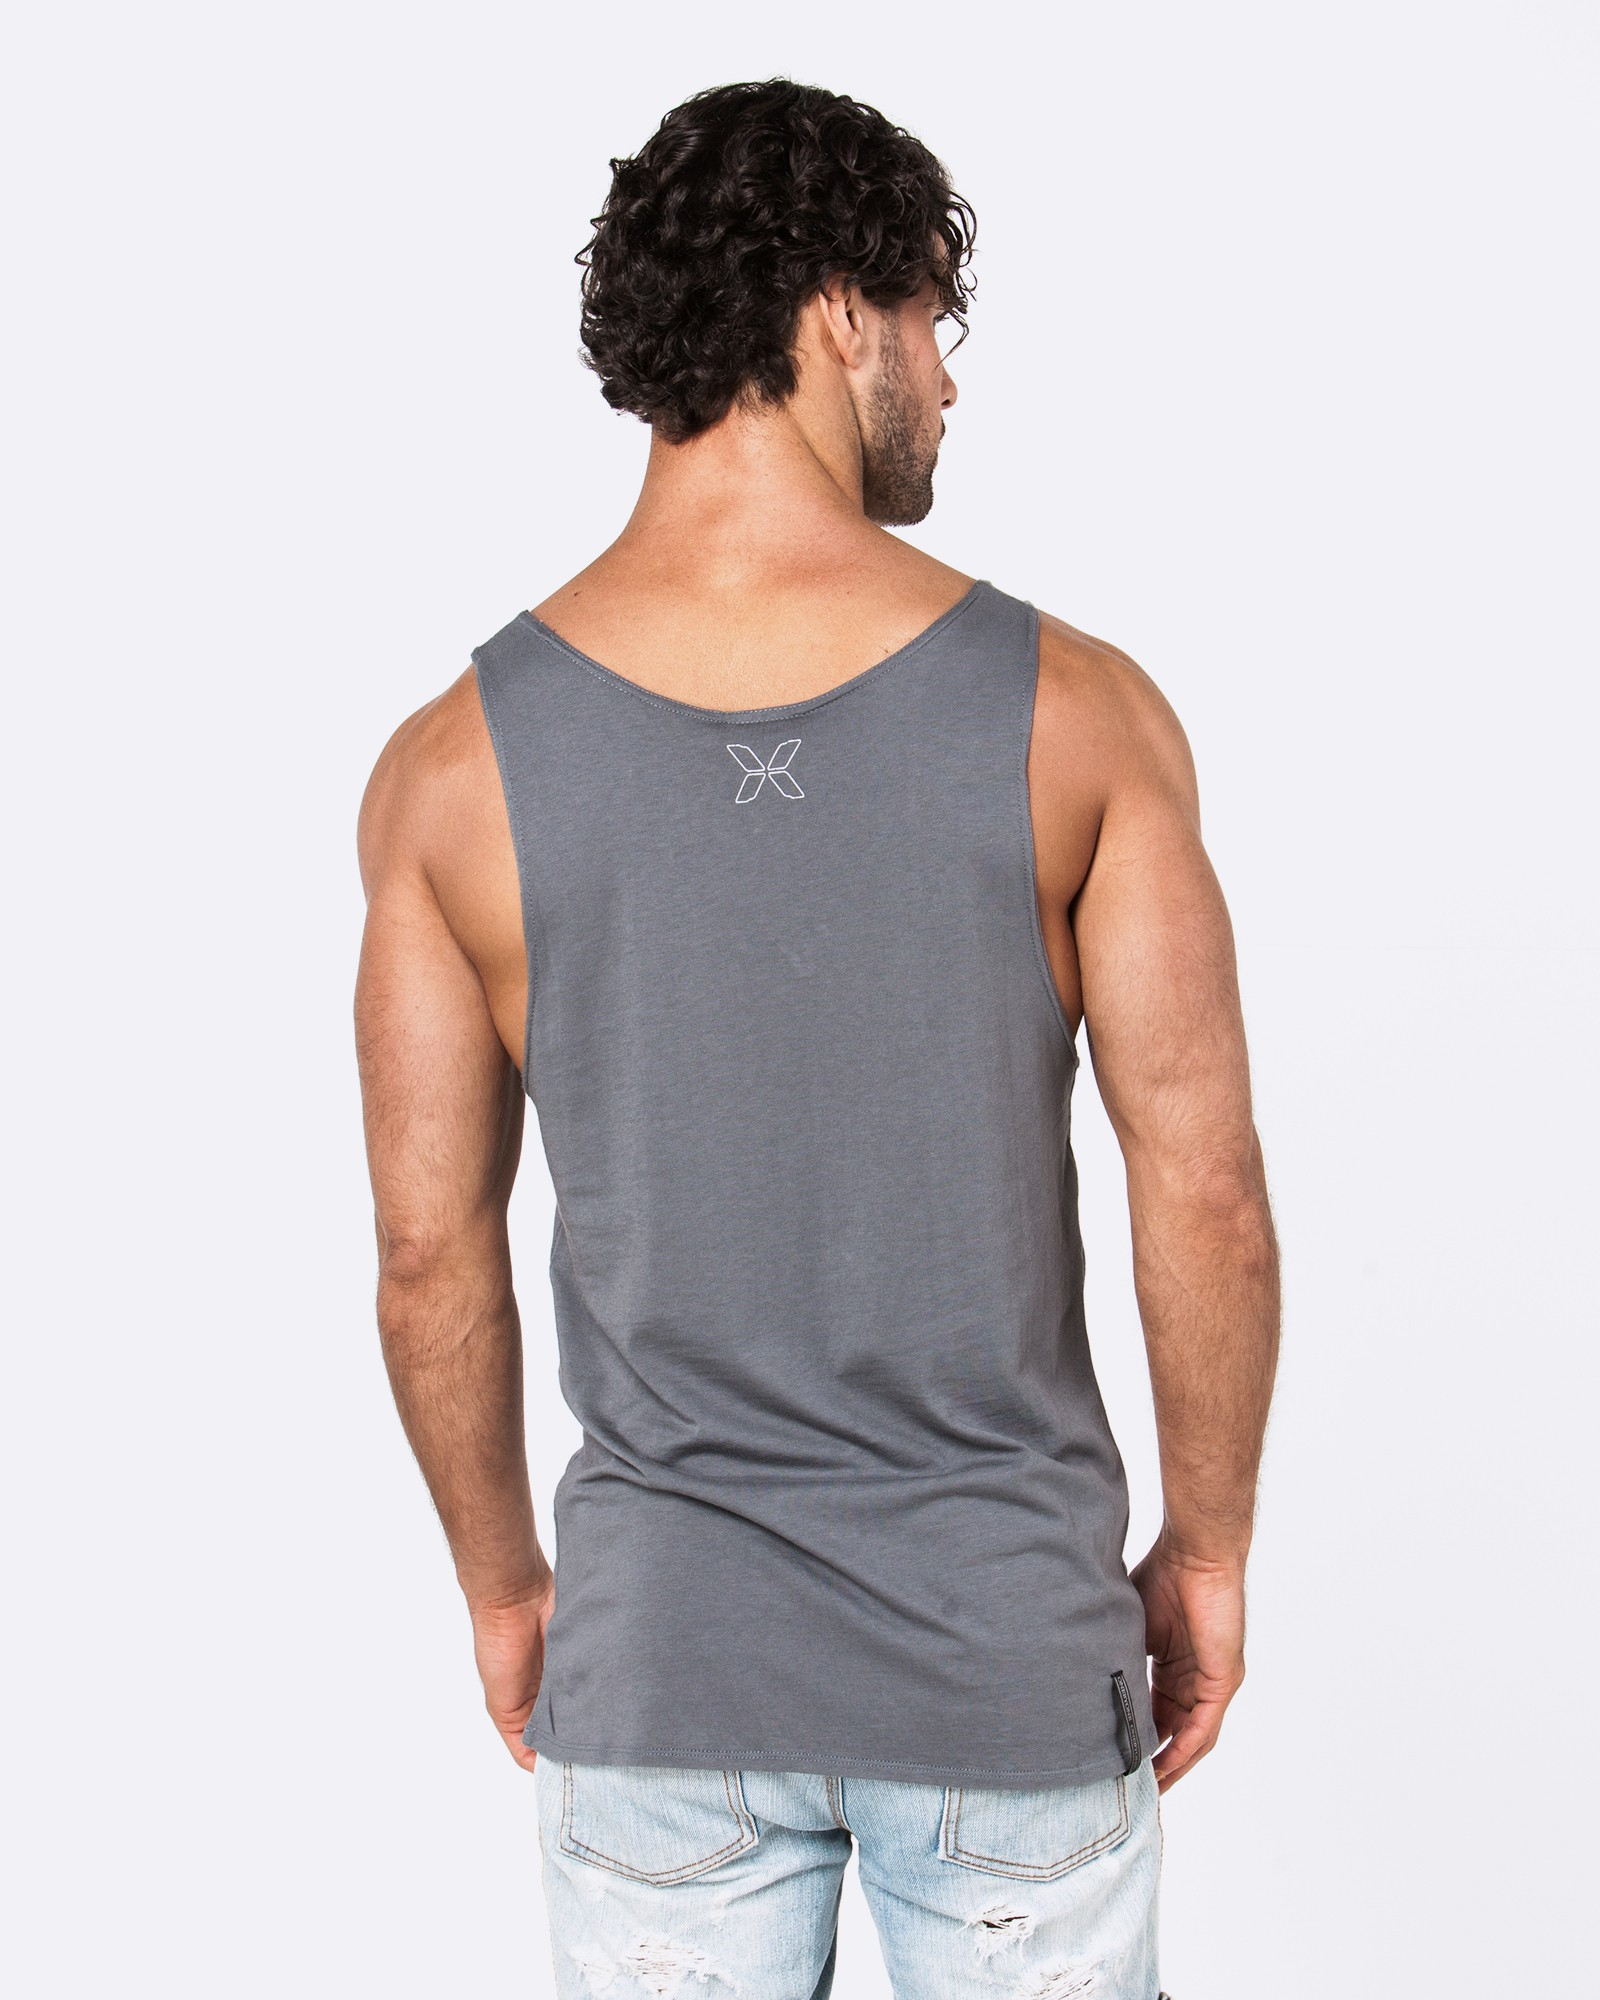 TODAY WARRIORS DARK GREY SINGLET